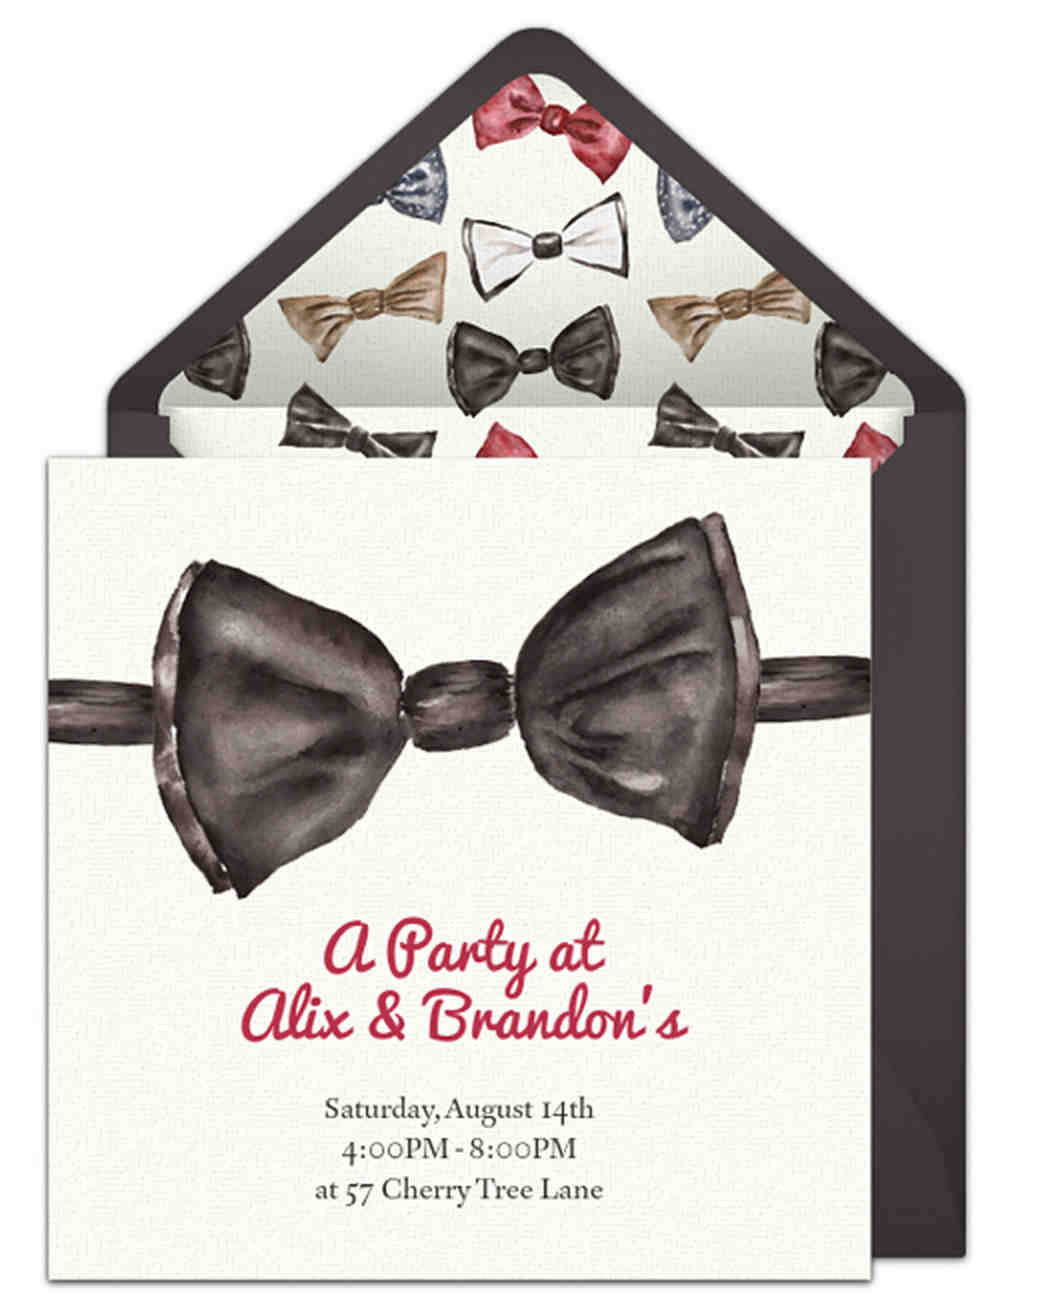 paperless-engagement-party-invitations-punchbowl-bow-tie-0416.jpg